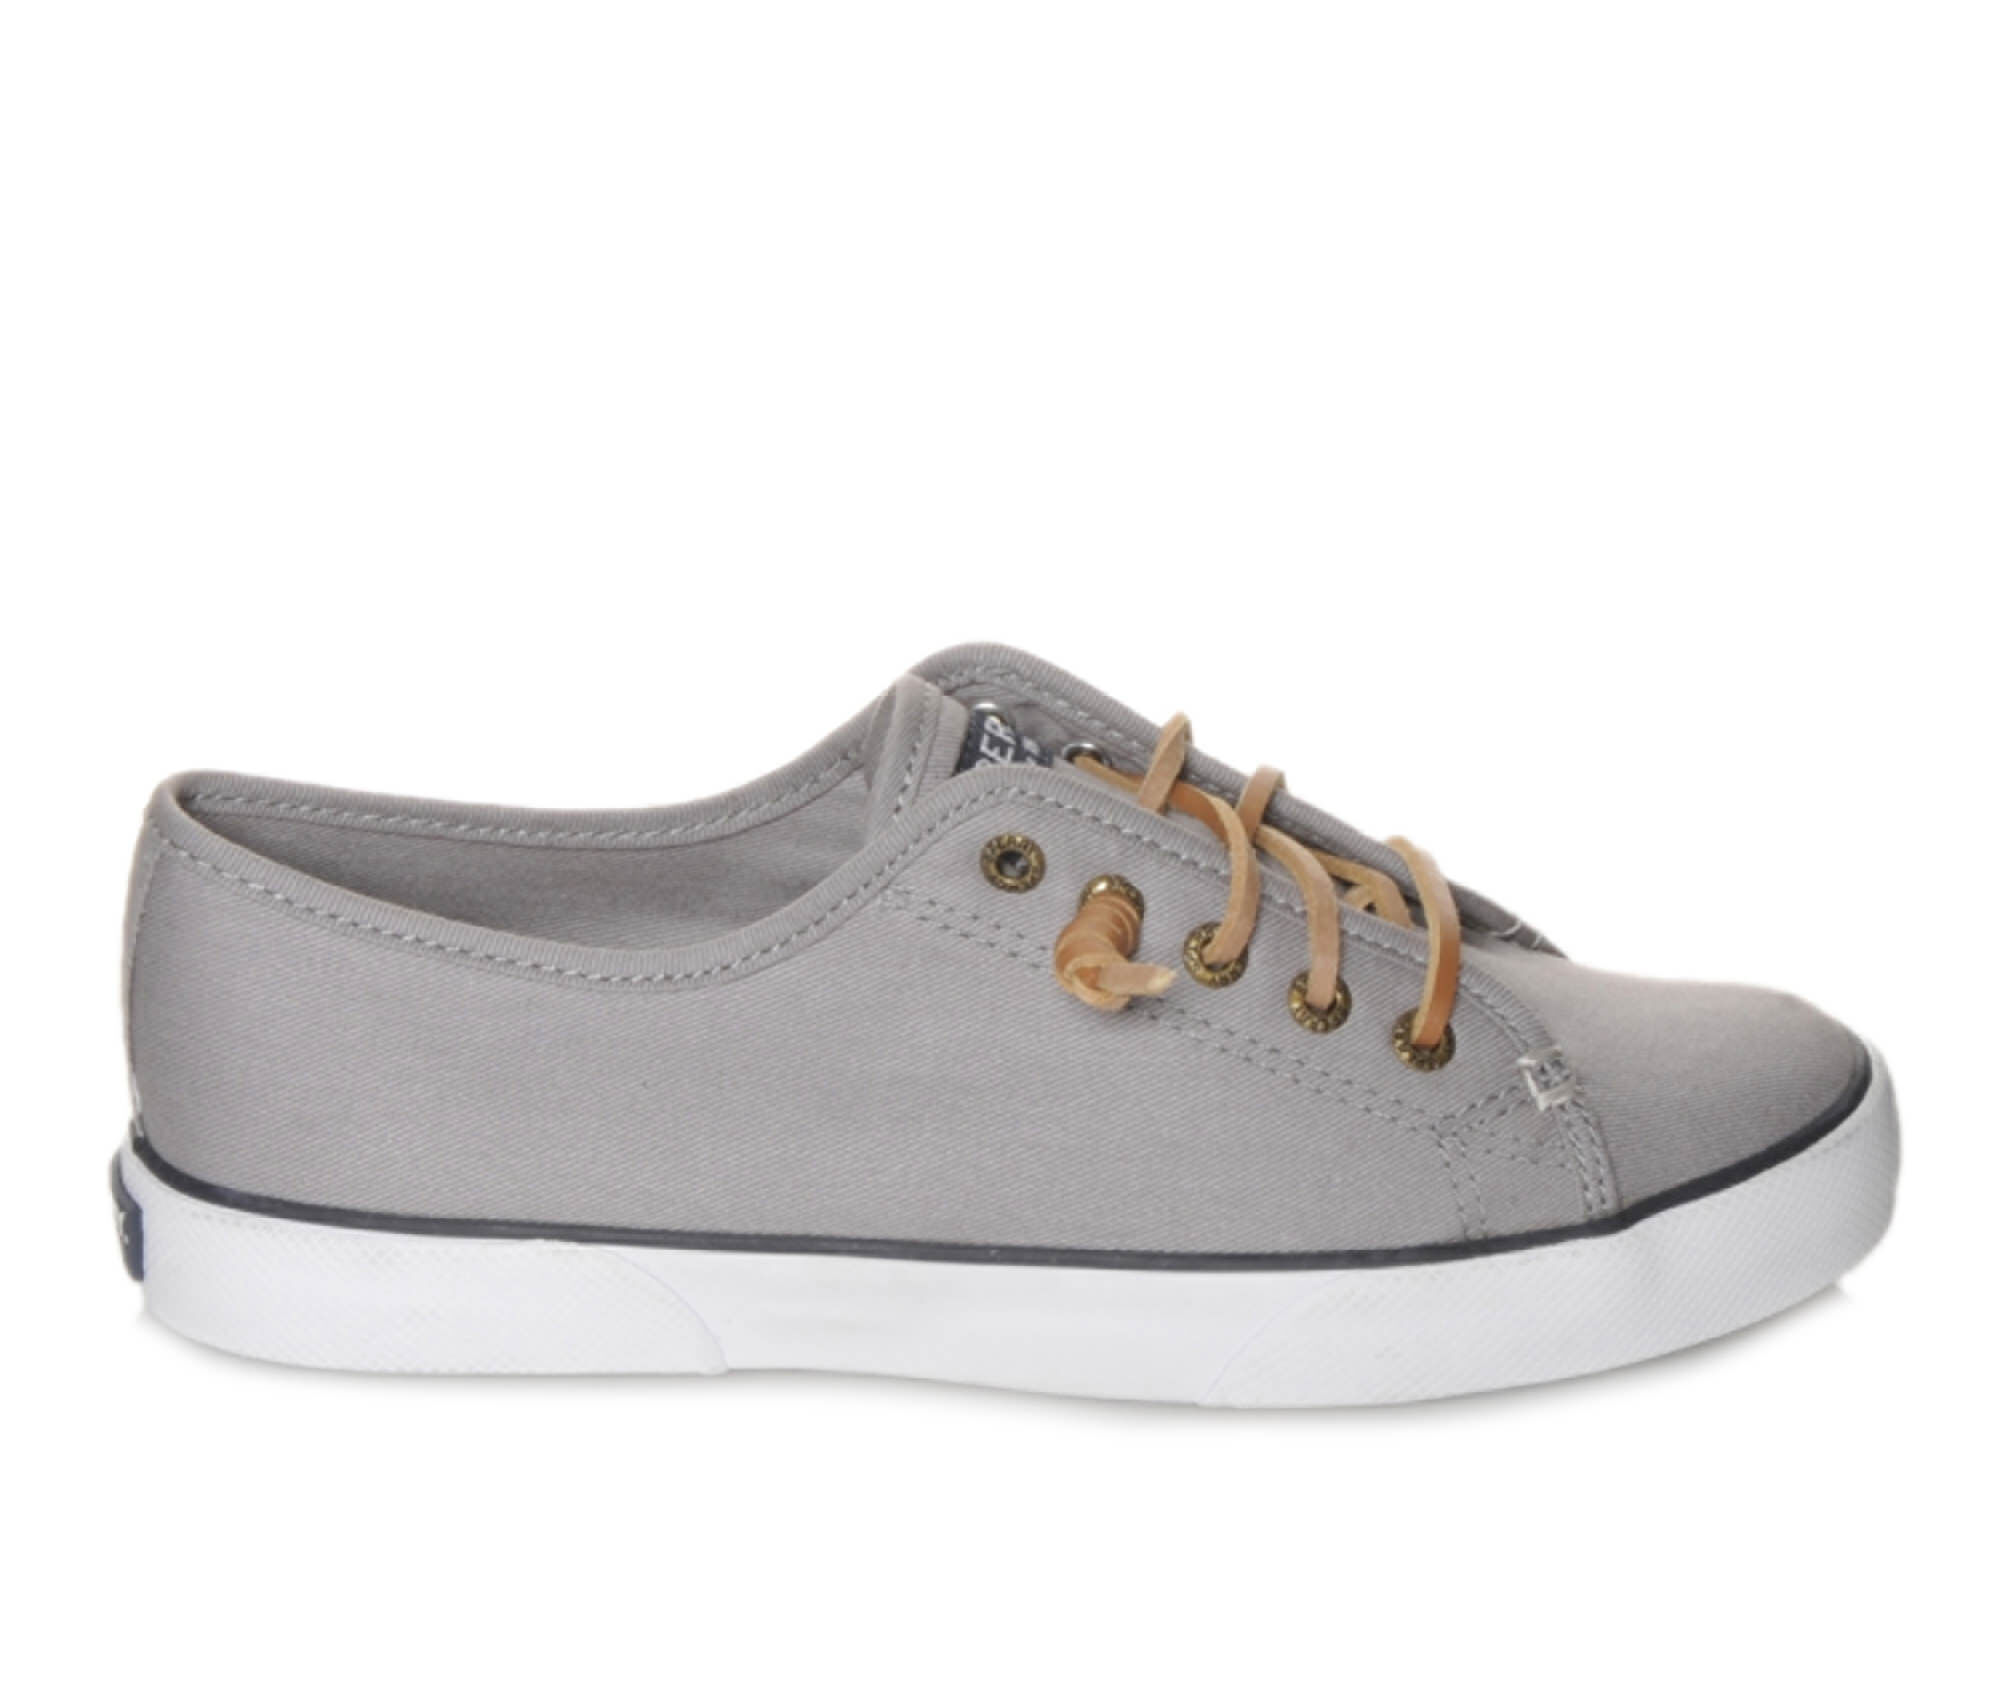 Latest Style Women's Sperry Pier View Sneakers Grey